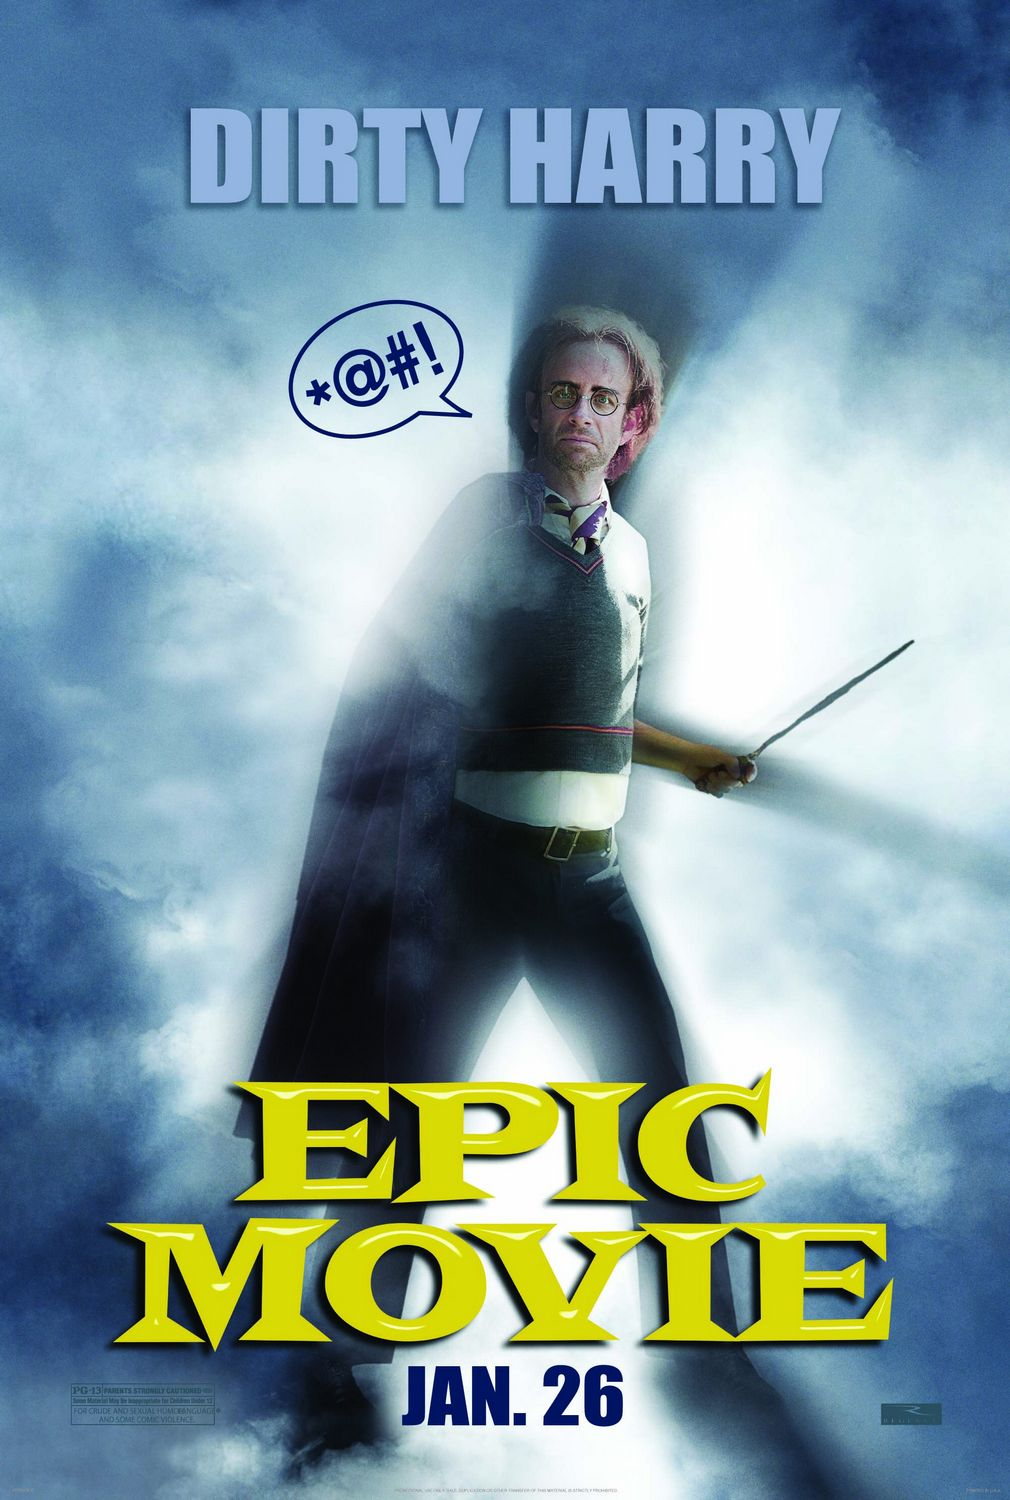 epic movie 2007 bluray download